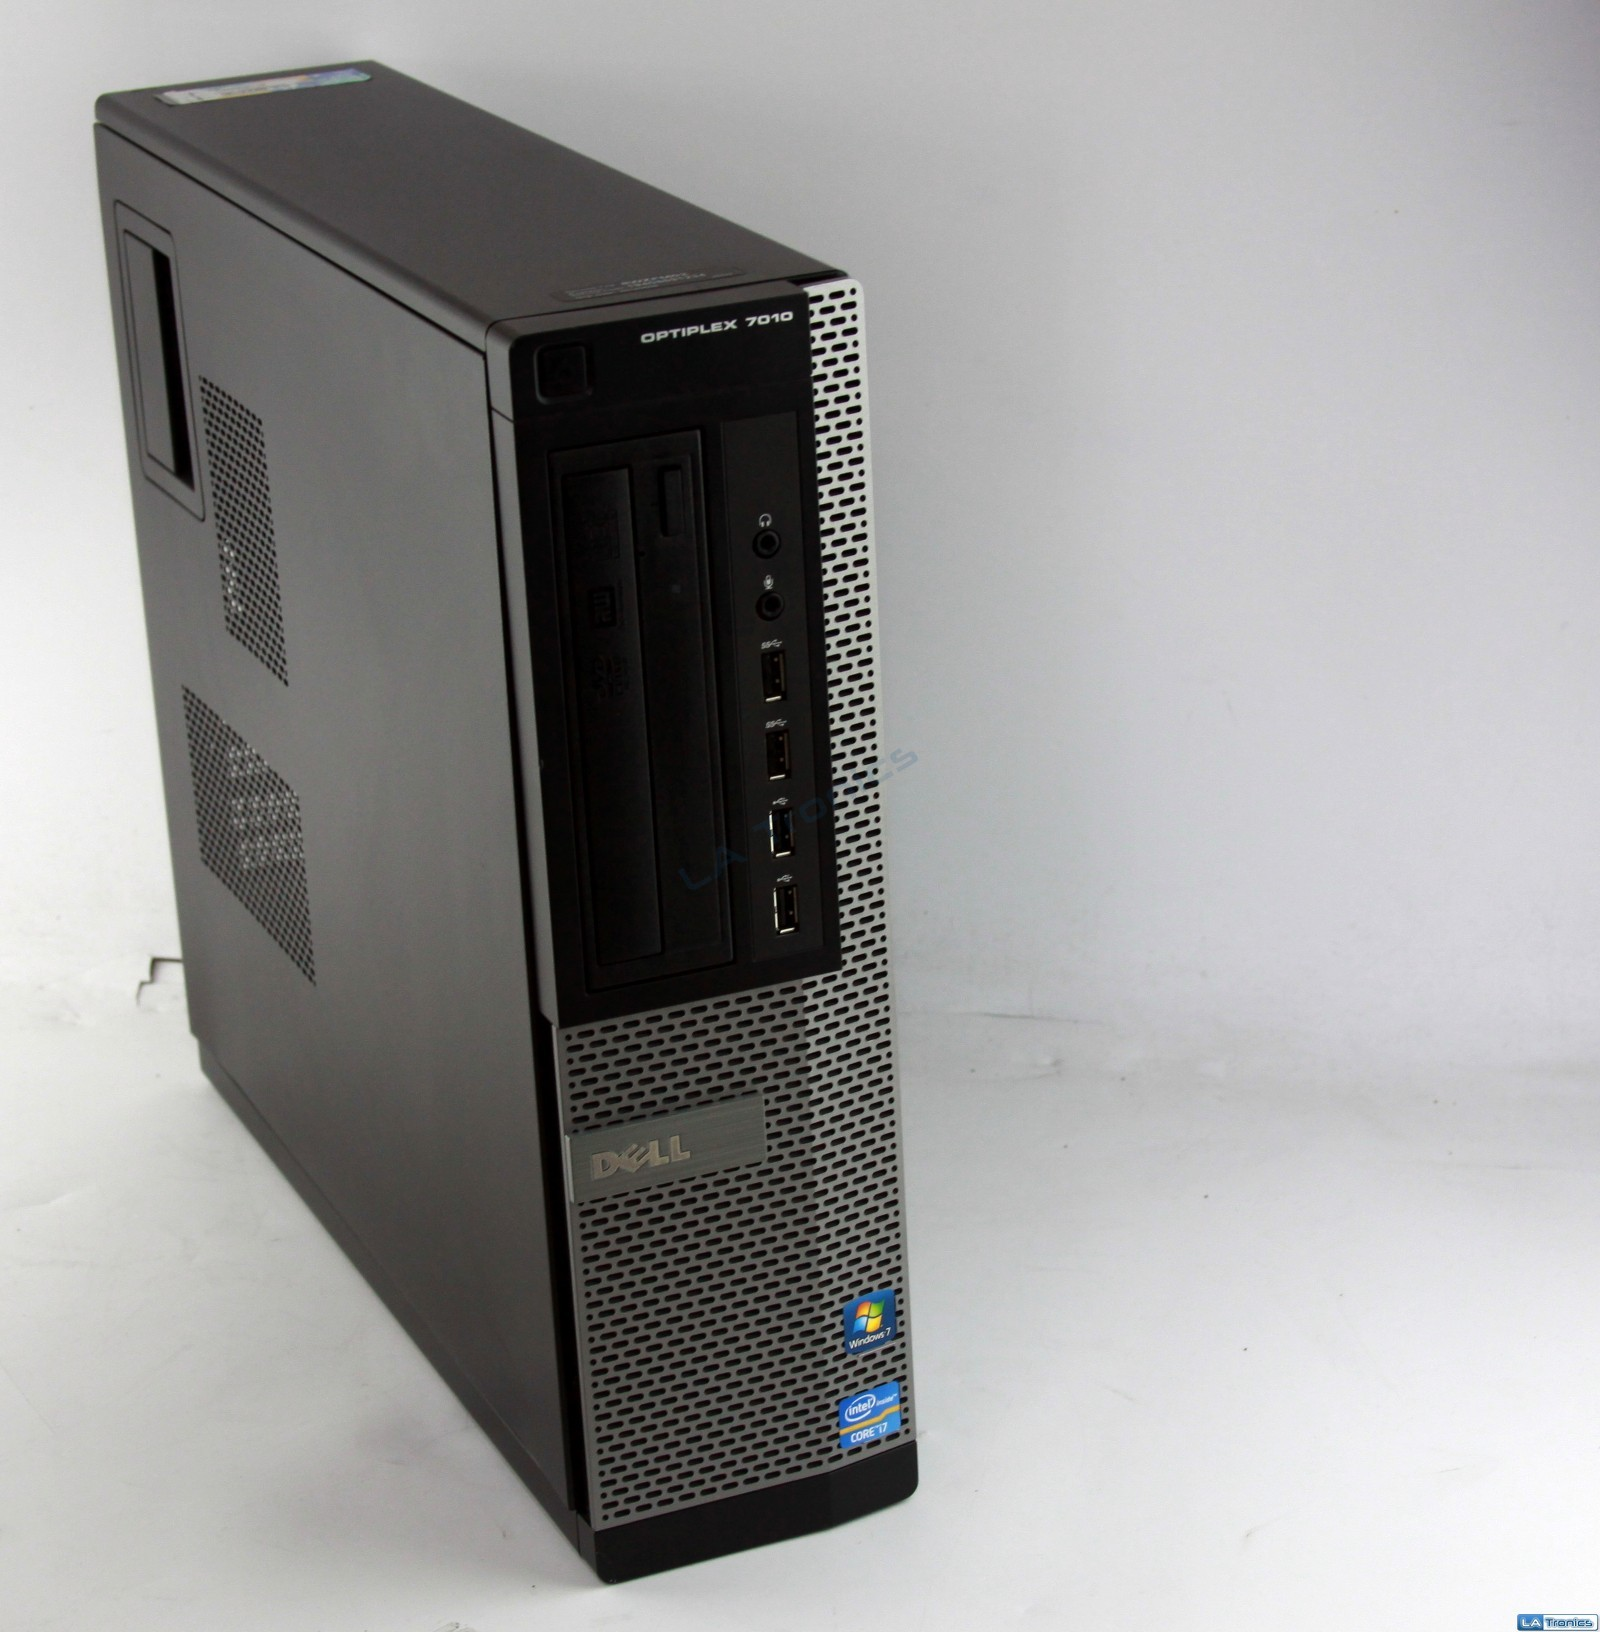 Dell Optiplex 7010 Desktop i7-3770 3.40GHz 8GB 500GB HDD Windows 10 Pro